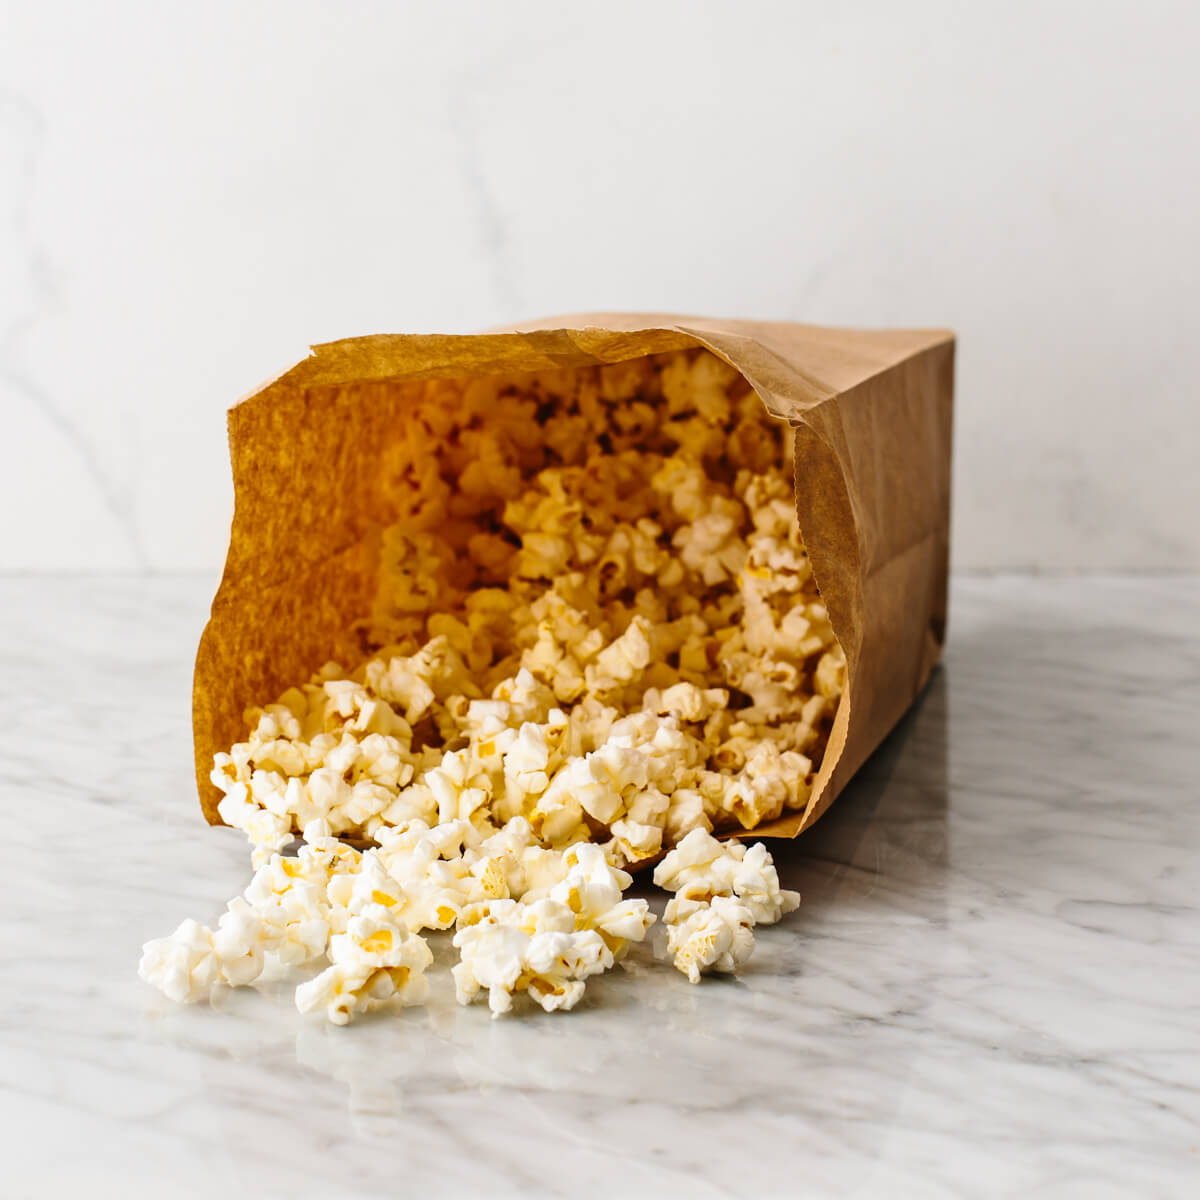 A bag with microwaved popcorn in it